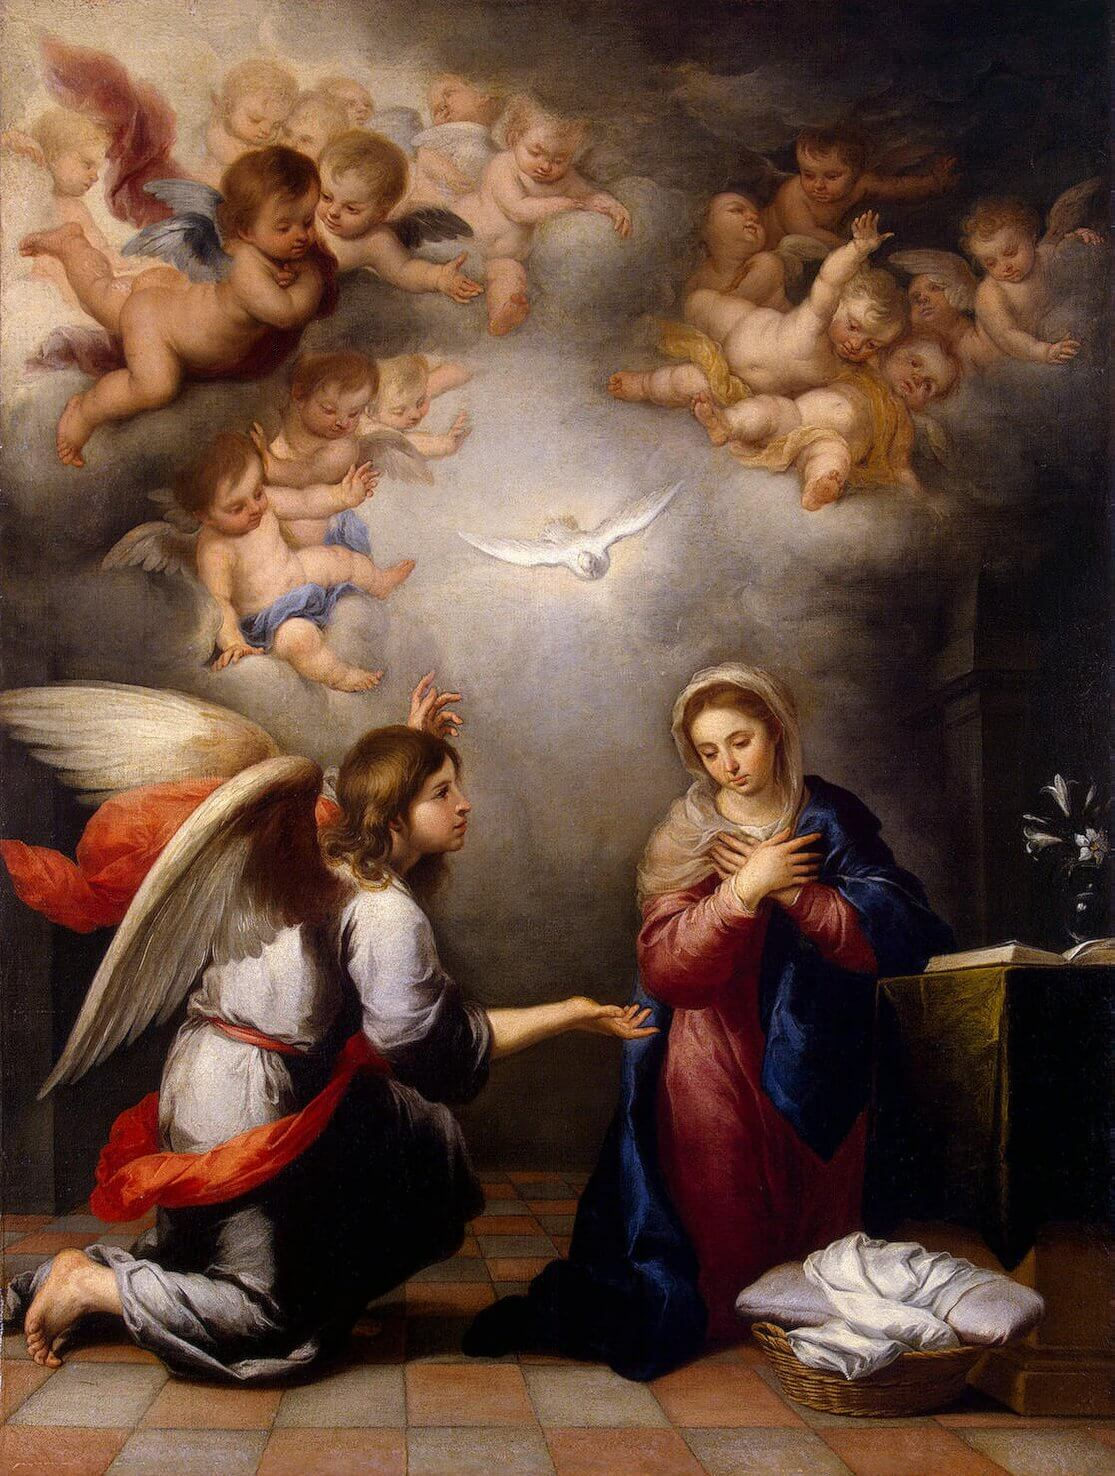 The Annunciation mystery